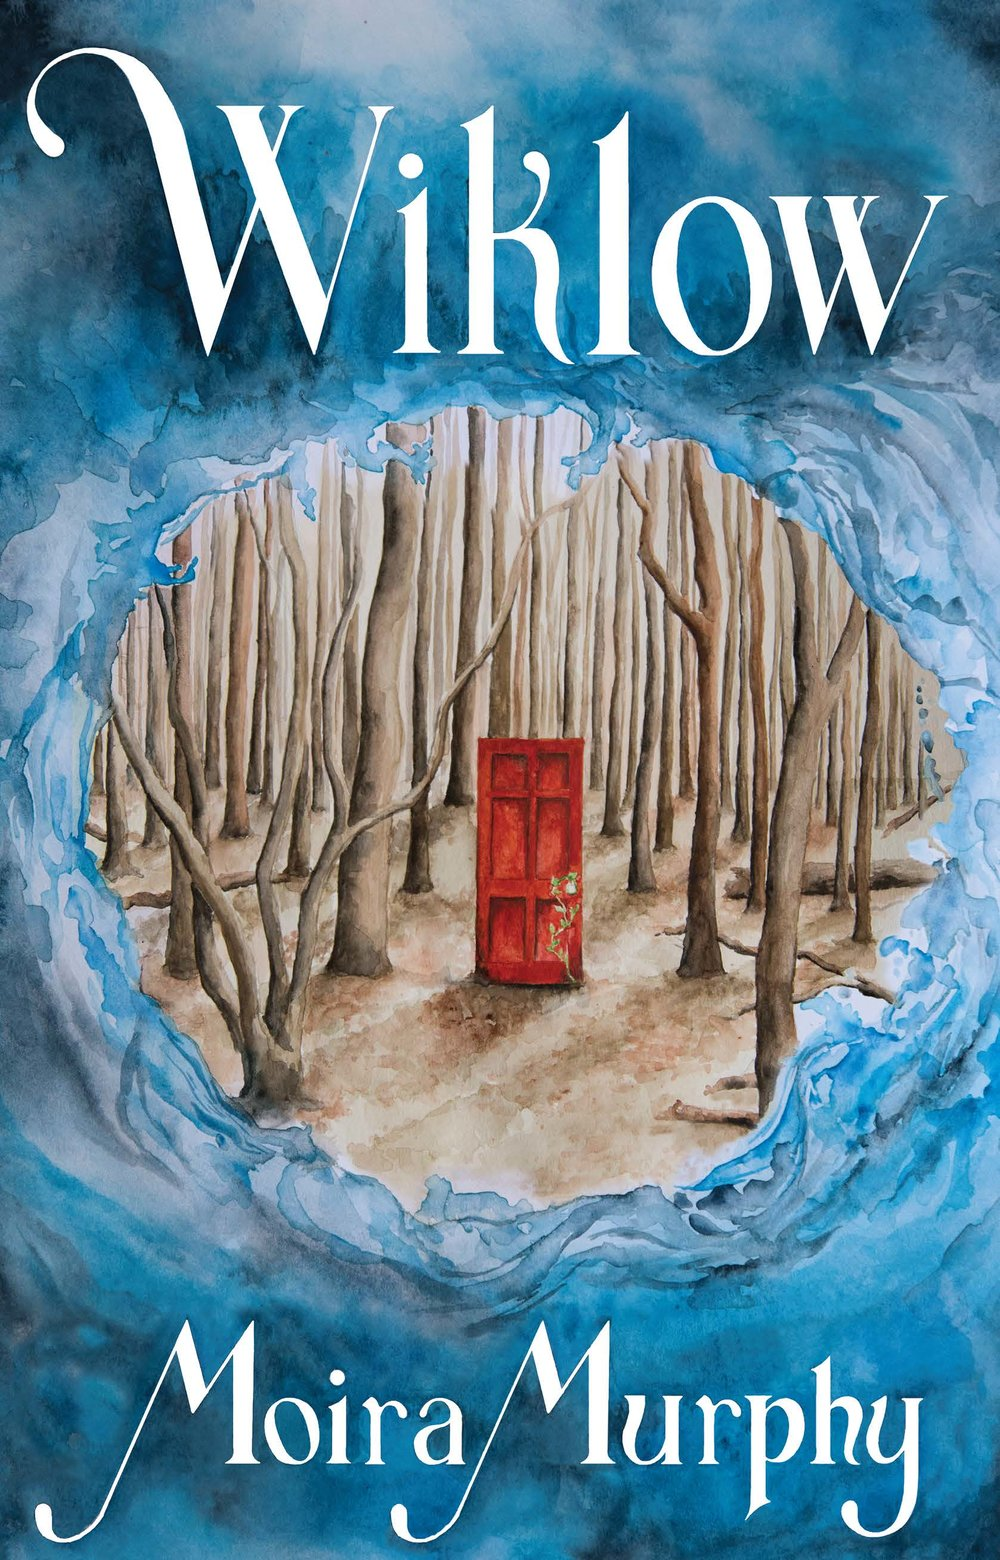 wiklow_front_cover_FINAL (1).jpg